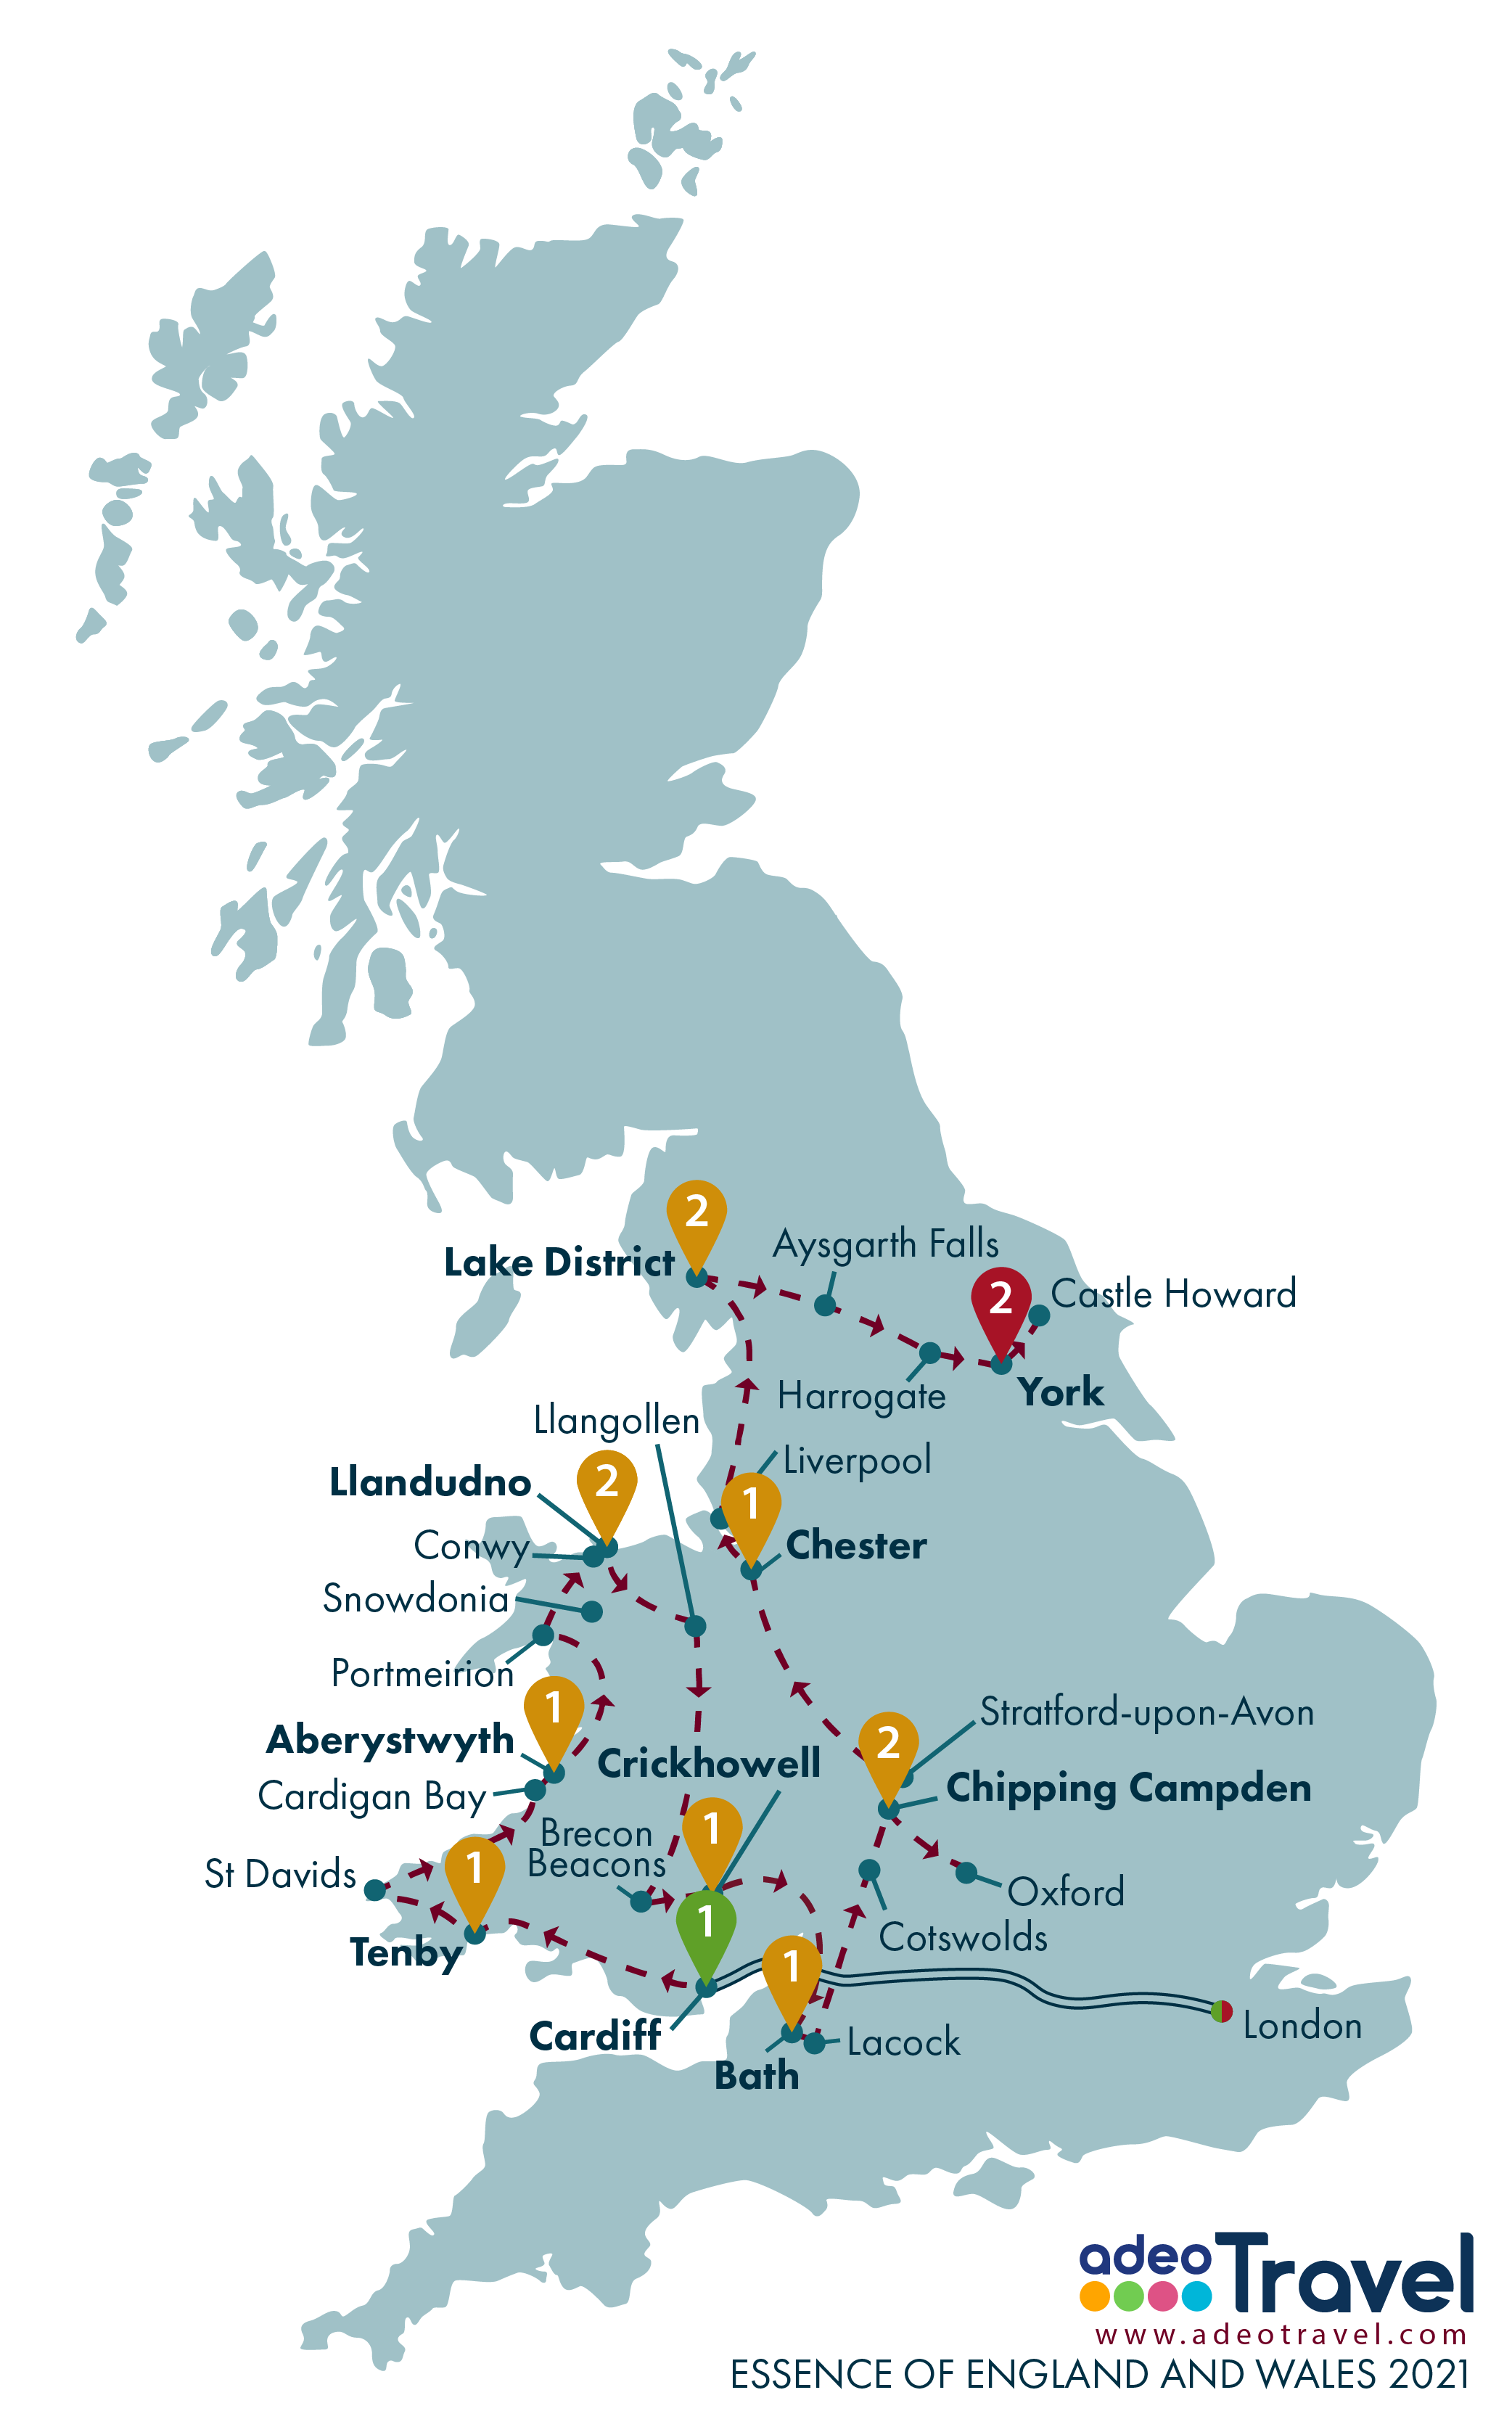 Map - Essence of England and Wales 2021